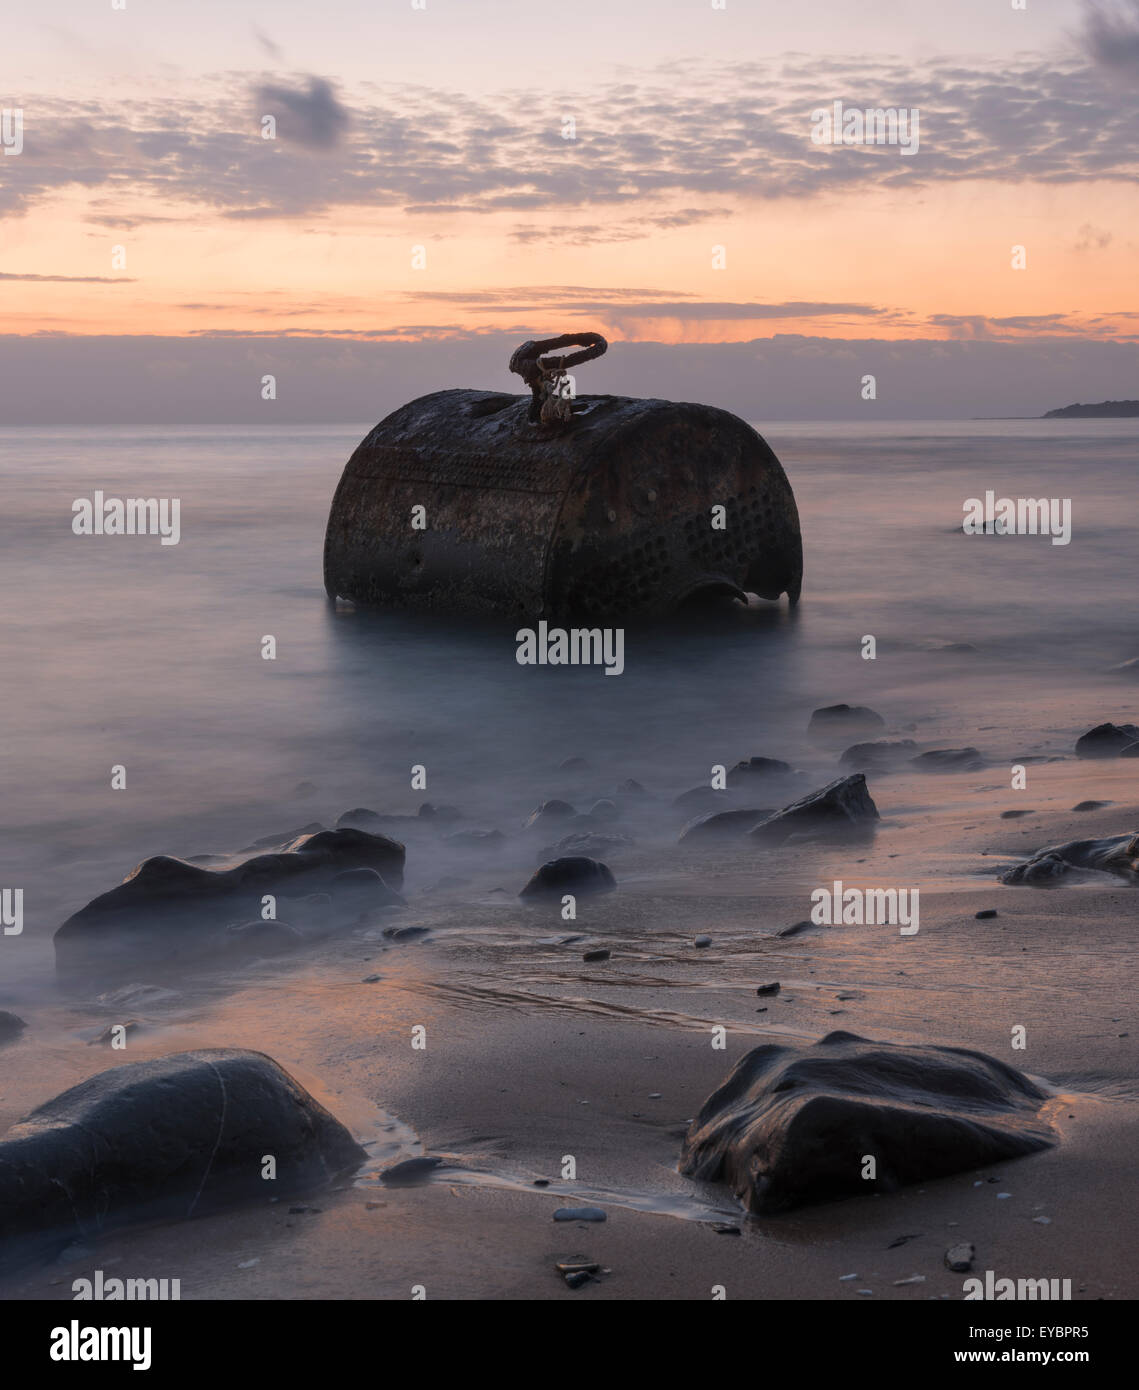 Old rusty metal piece abandoned in the sea. Tarifa, Cadiz, Costa de la Luz, Andalucia, Southern Spain. - Stock Image